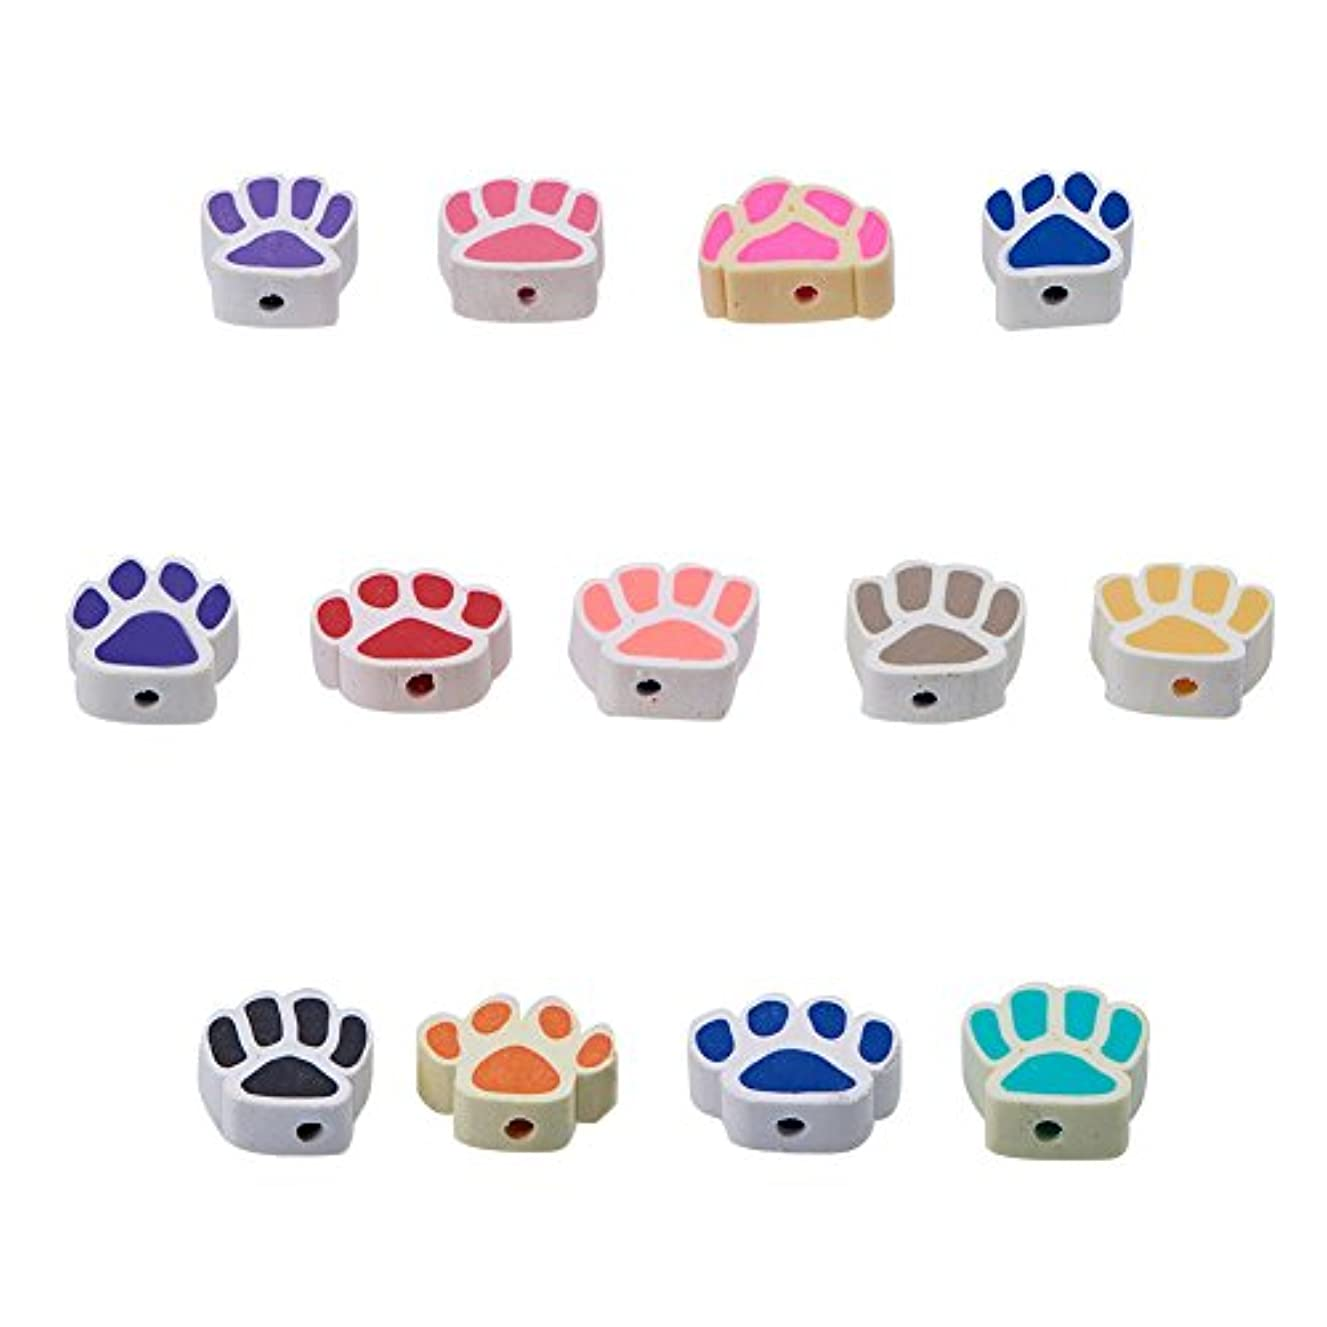 NBEADS 300PCS Handmade Polymer Clay Beads, Dog Paw Prints Loose Beads Spacer Beads for Bracelet Jewelry Making Findings